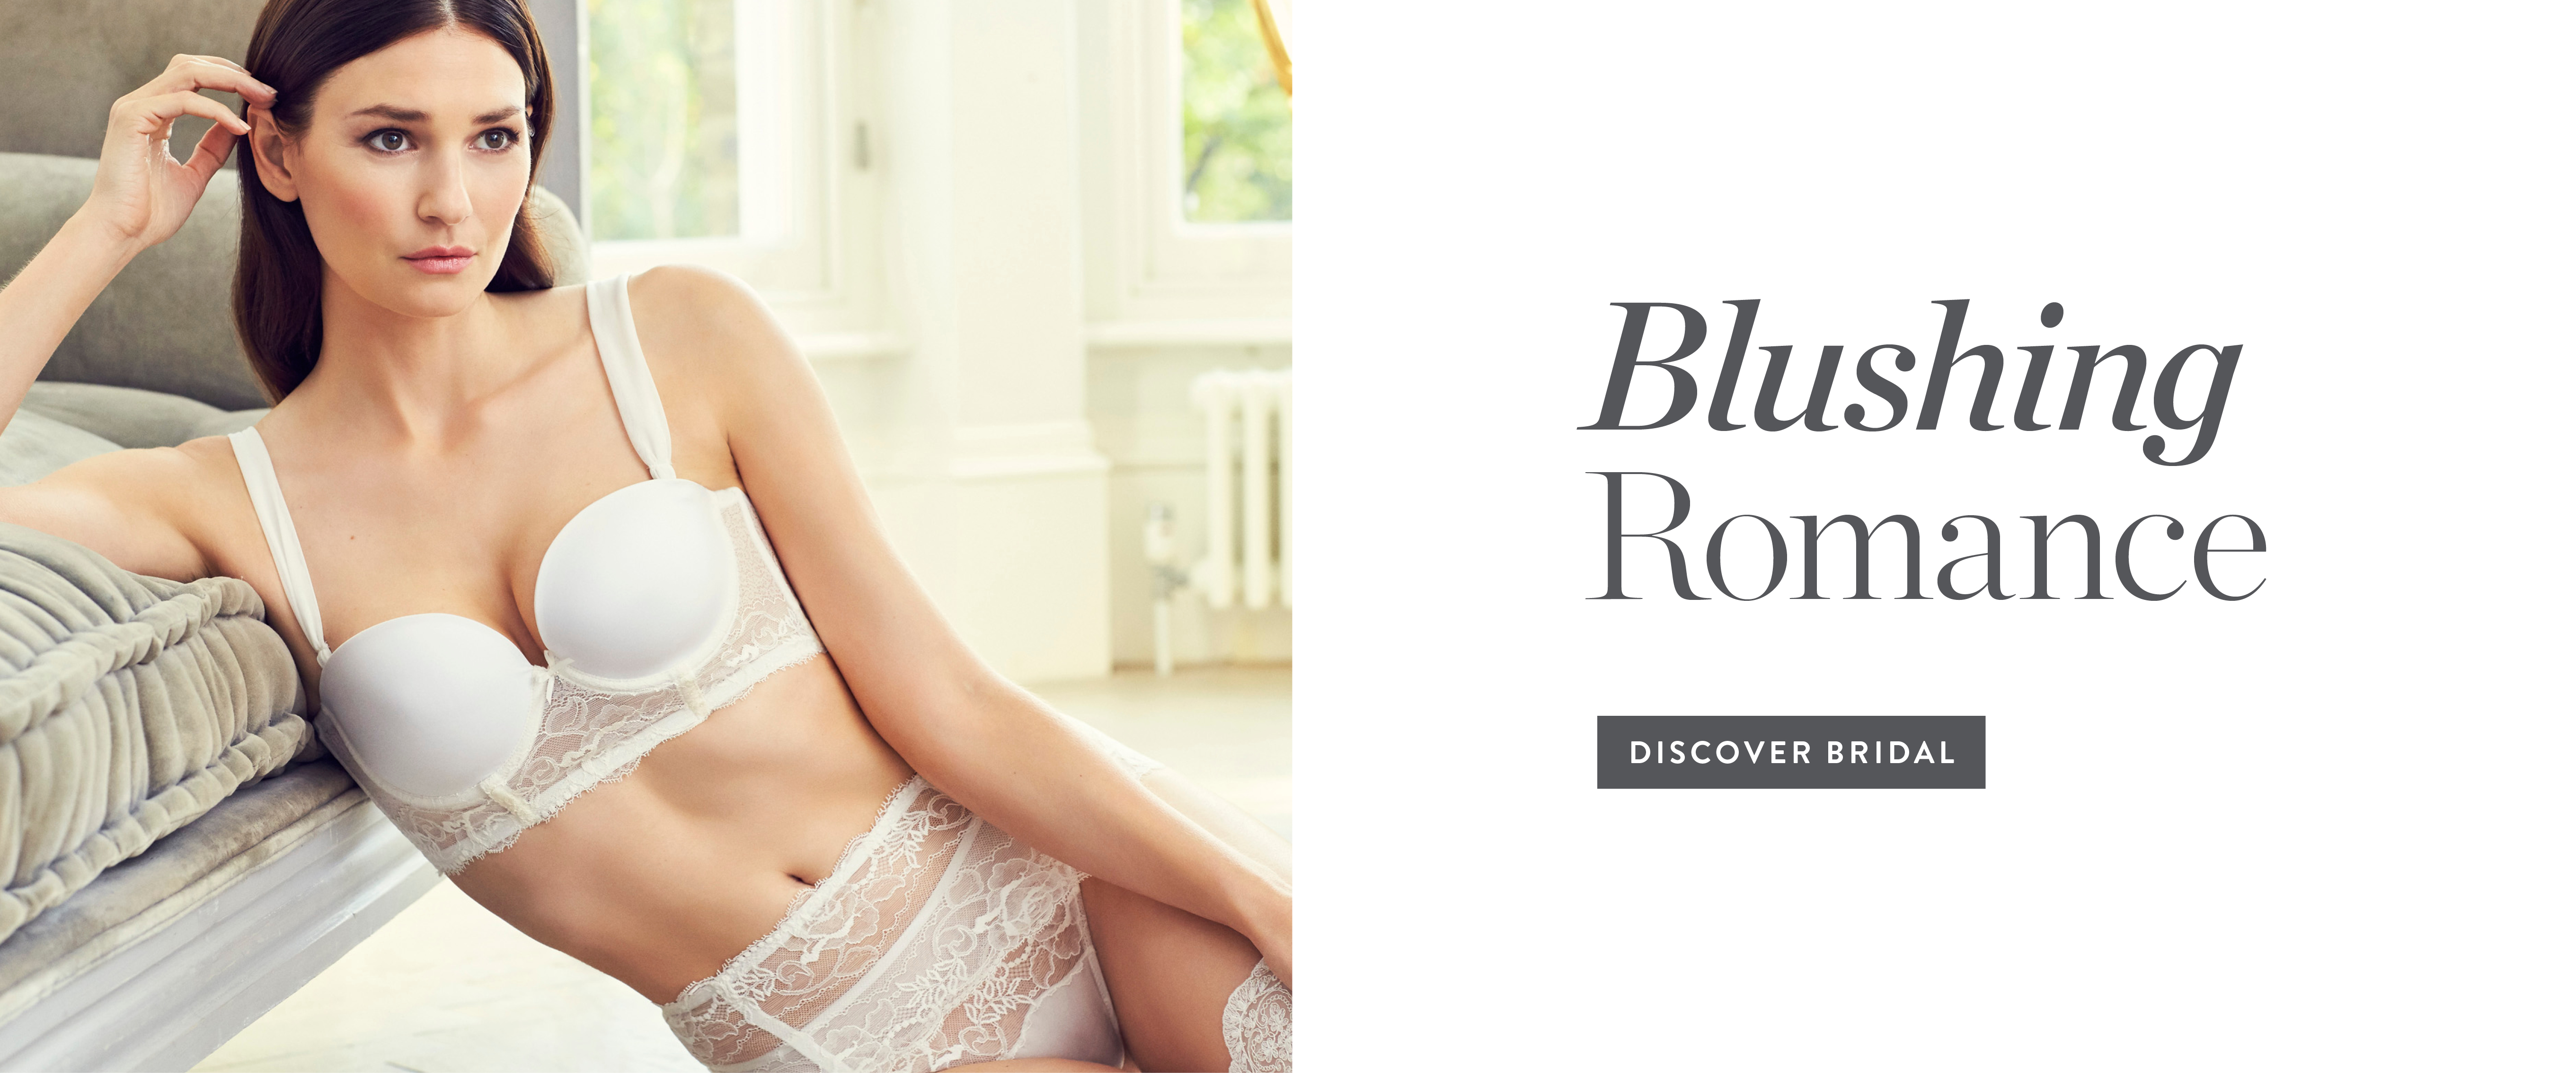 Getting married or know someone who is? Discover our Bridal lingerie and tips for the big day | Rigby and Peller Bridal lingerie